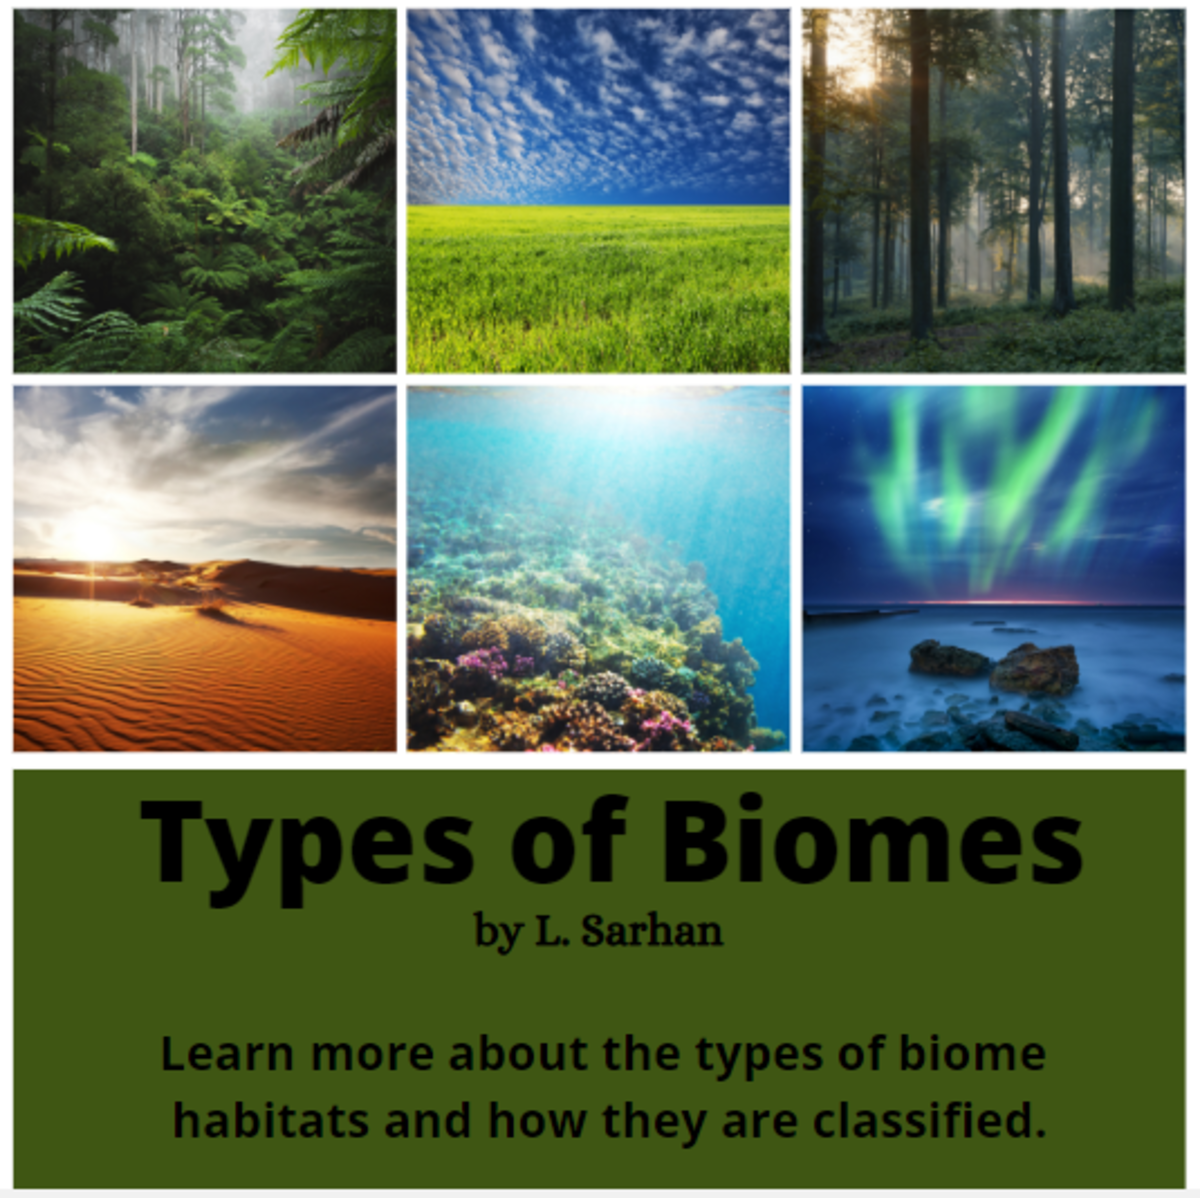 A biome is a large naturally occurring community of flora and fauna occupying a major habitat.